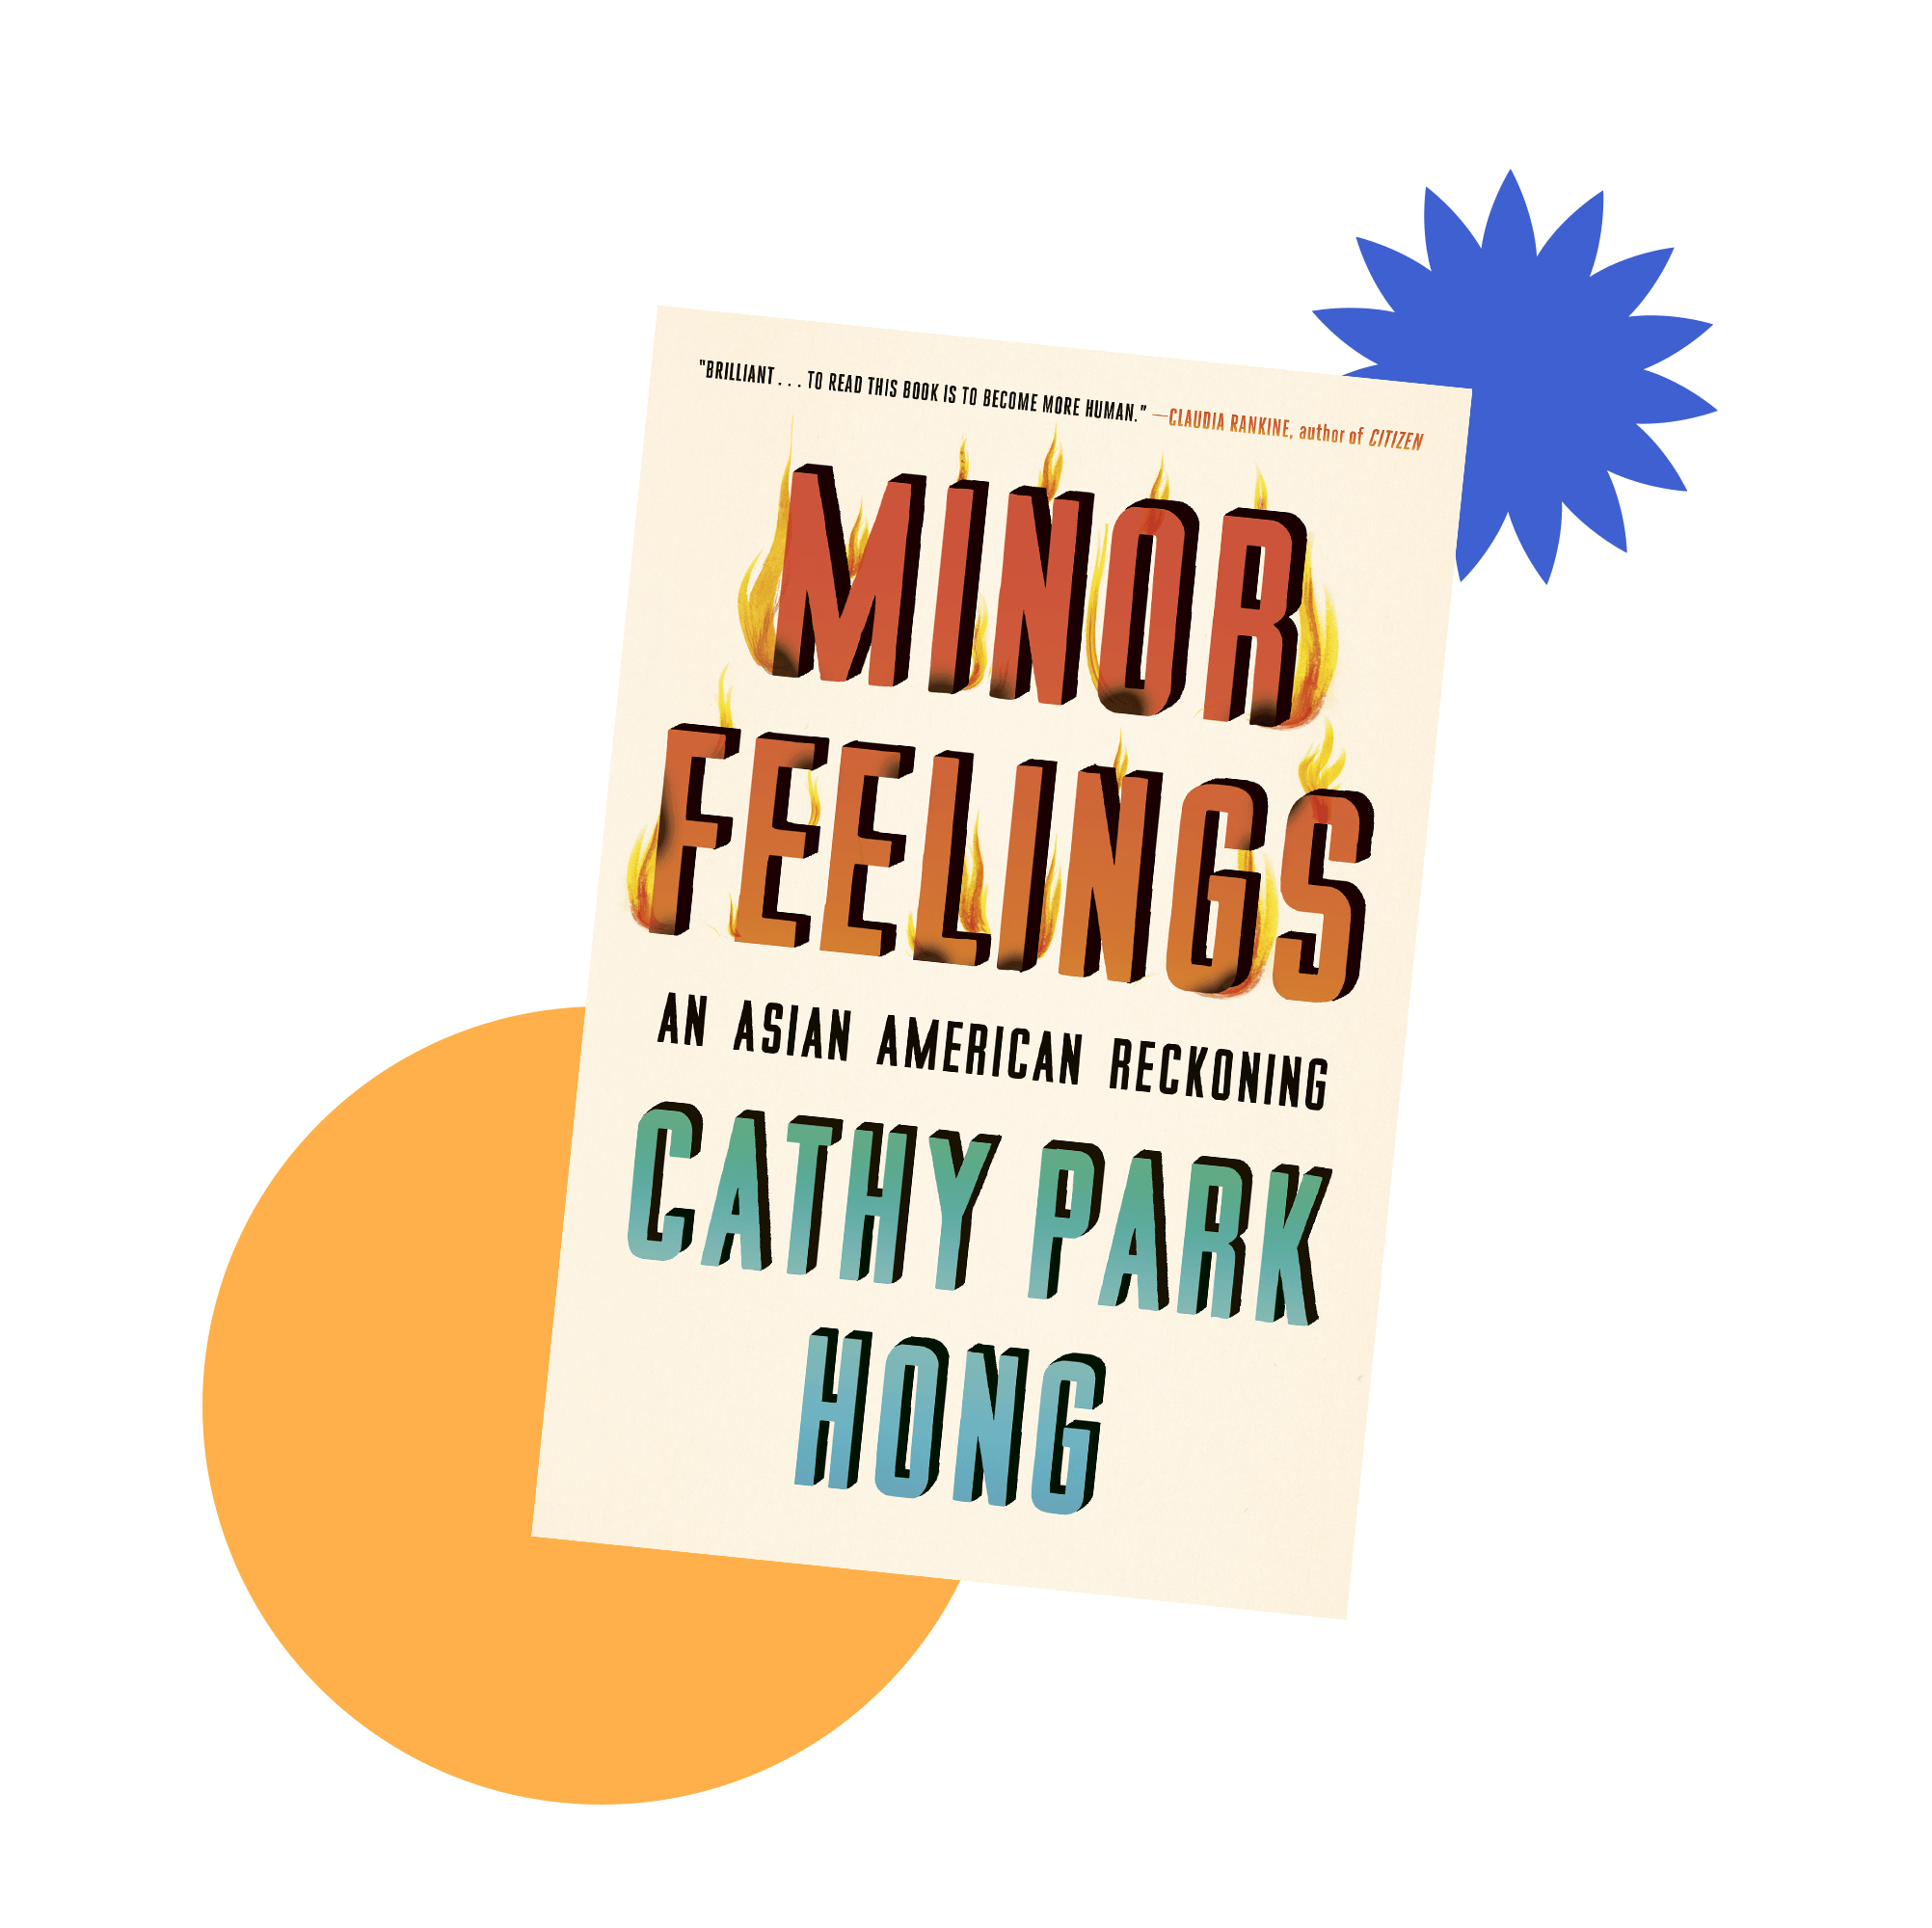 Book jacket cover for Minor Feelings: An Asian American Reckoning by Cathy Park Hong